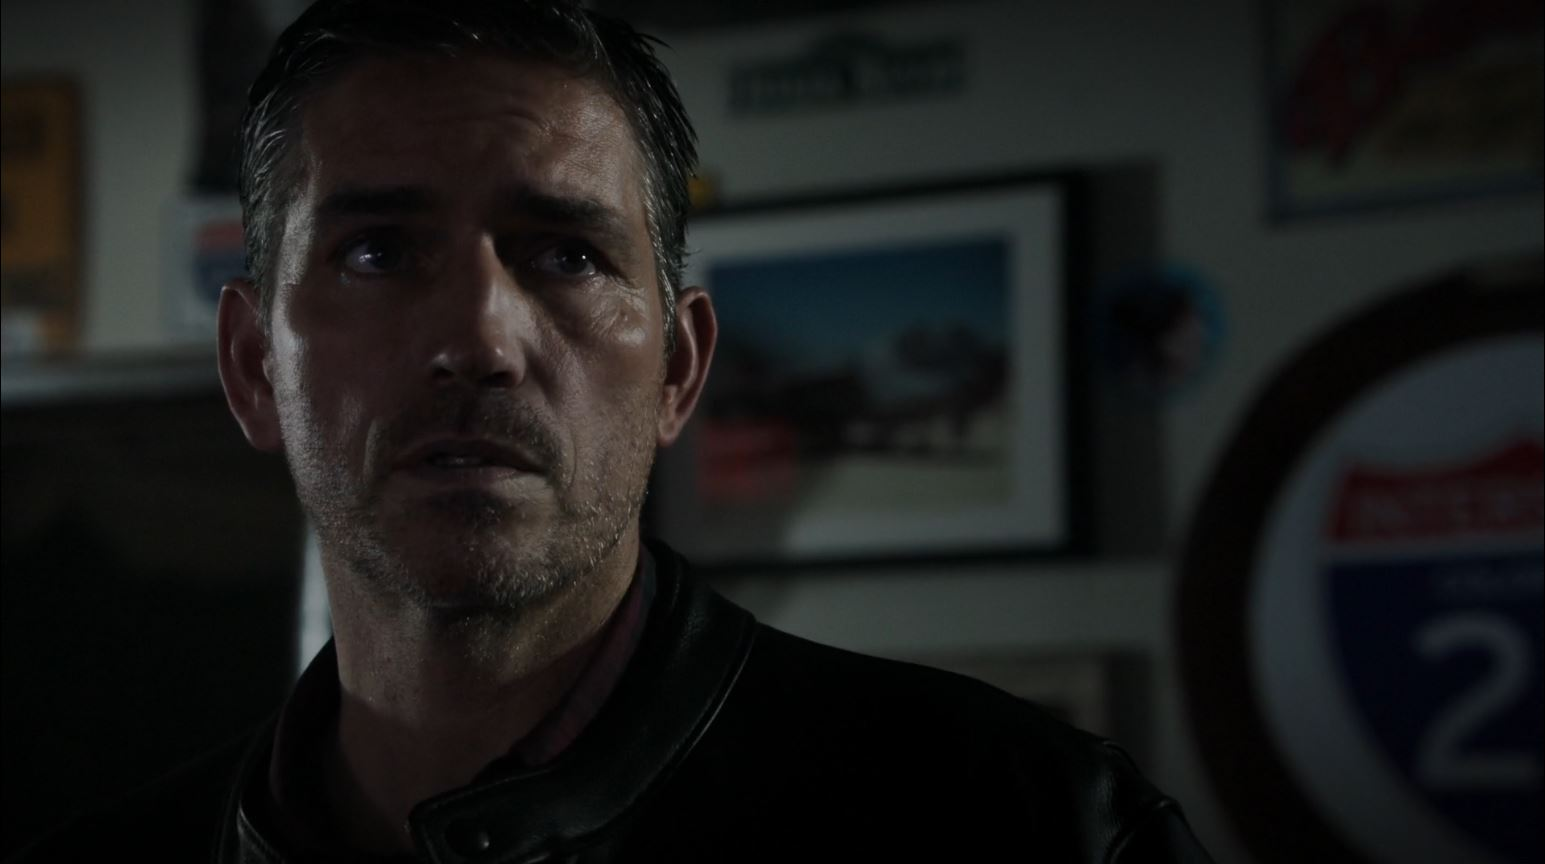 Person of Interest - Lethe - Jim Caviezel as Mr. Reese